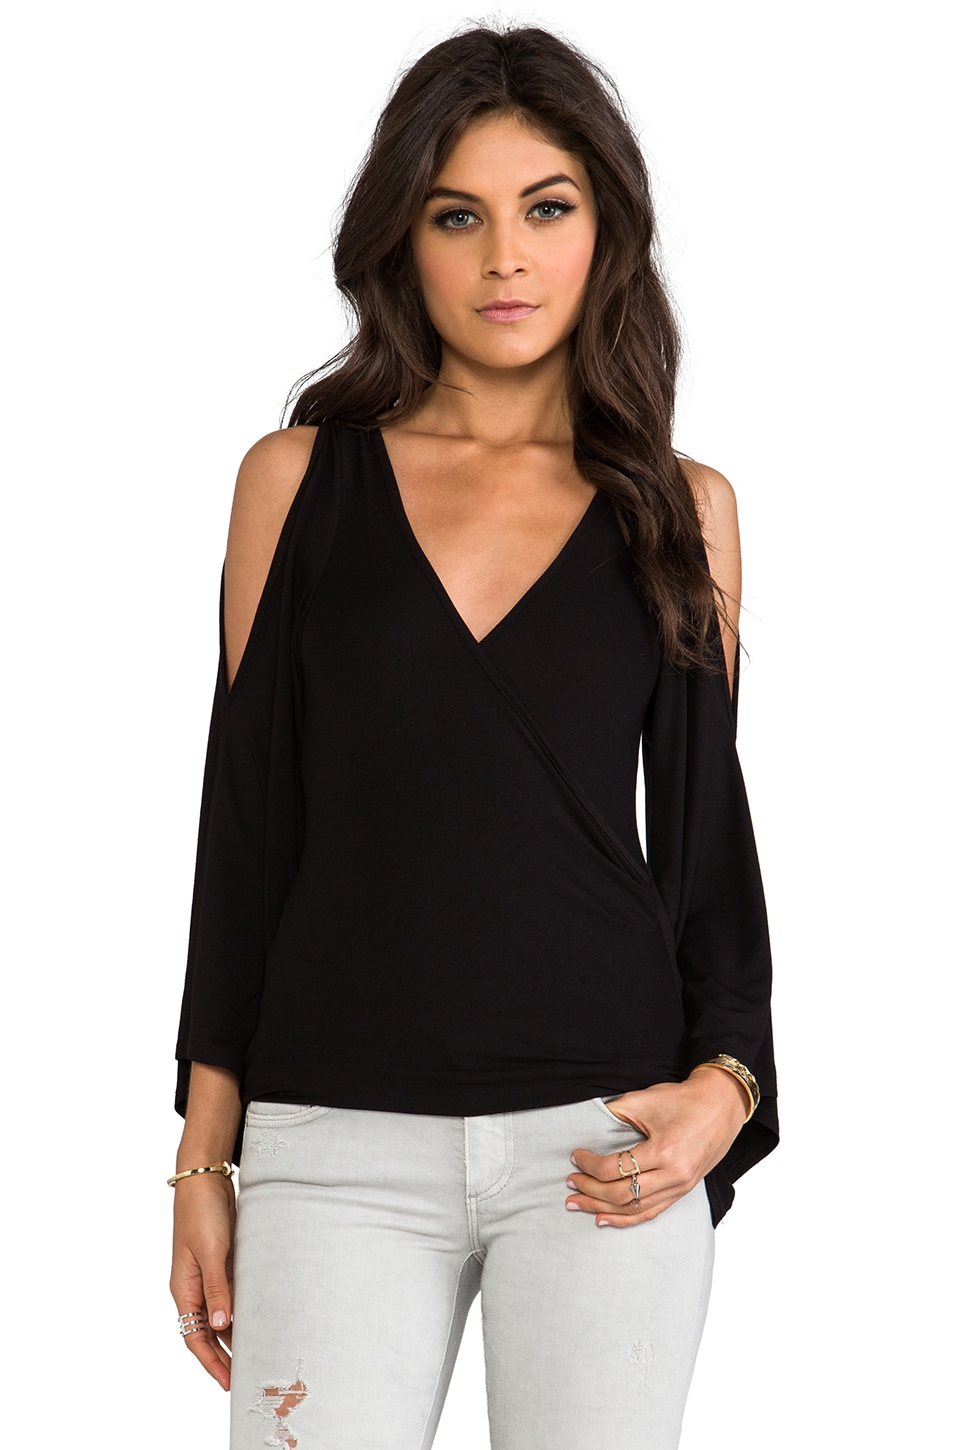 James & Joy Kelsey Top in Black